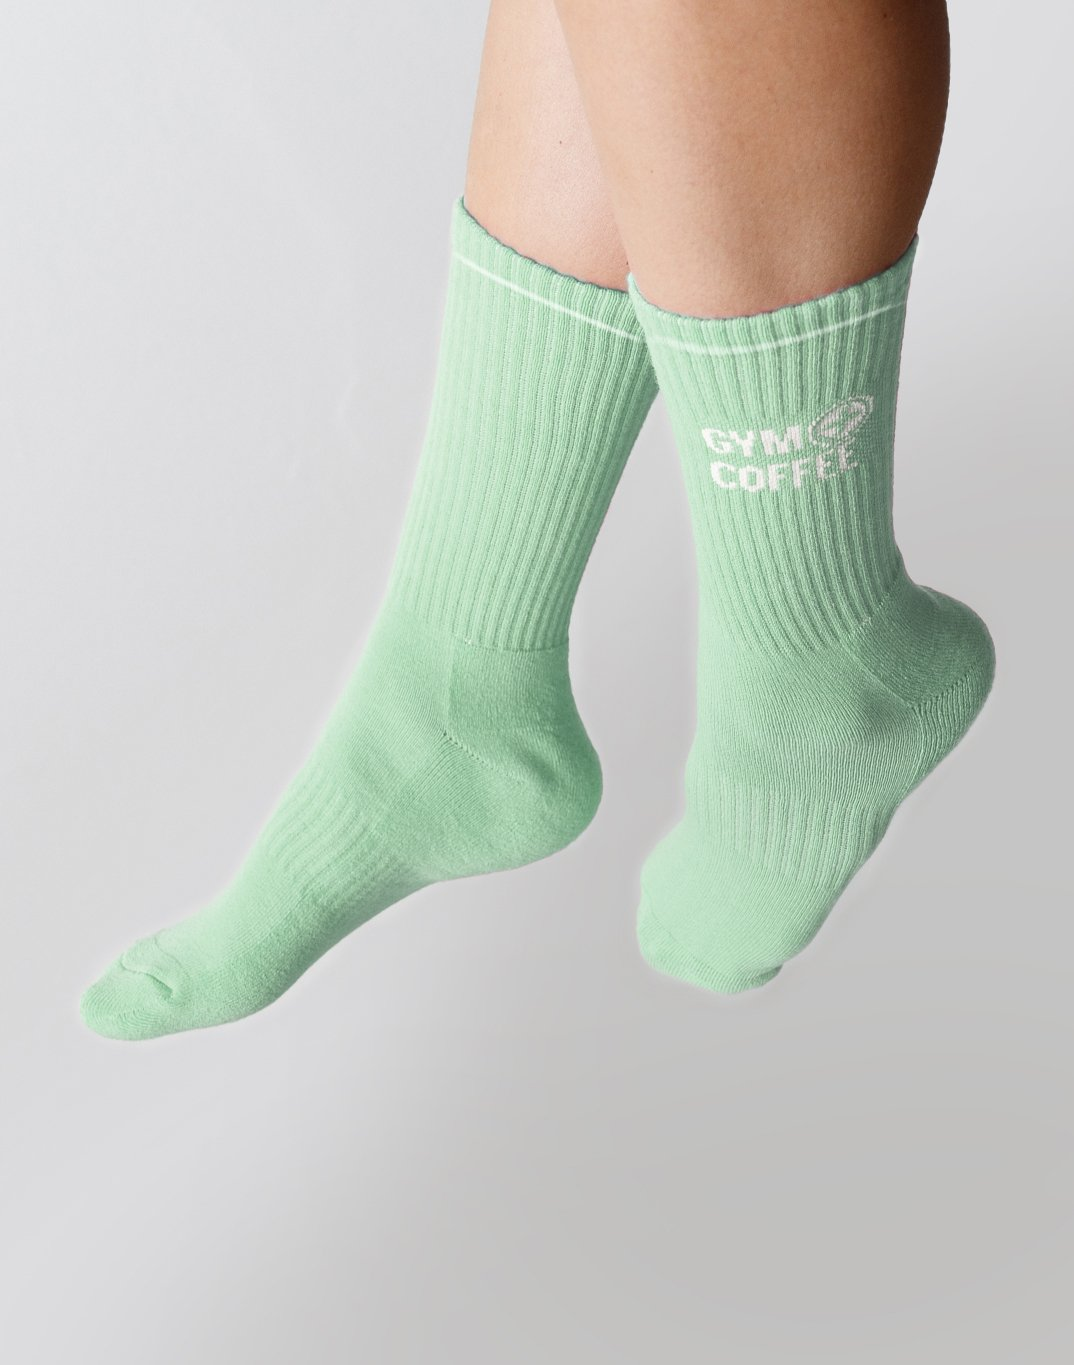 Gym Plus Coffee Socks Sport Socks in Pale Green Designed in Ireland